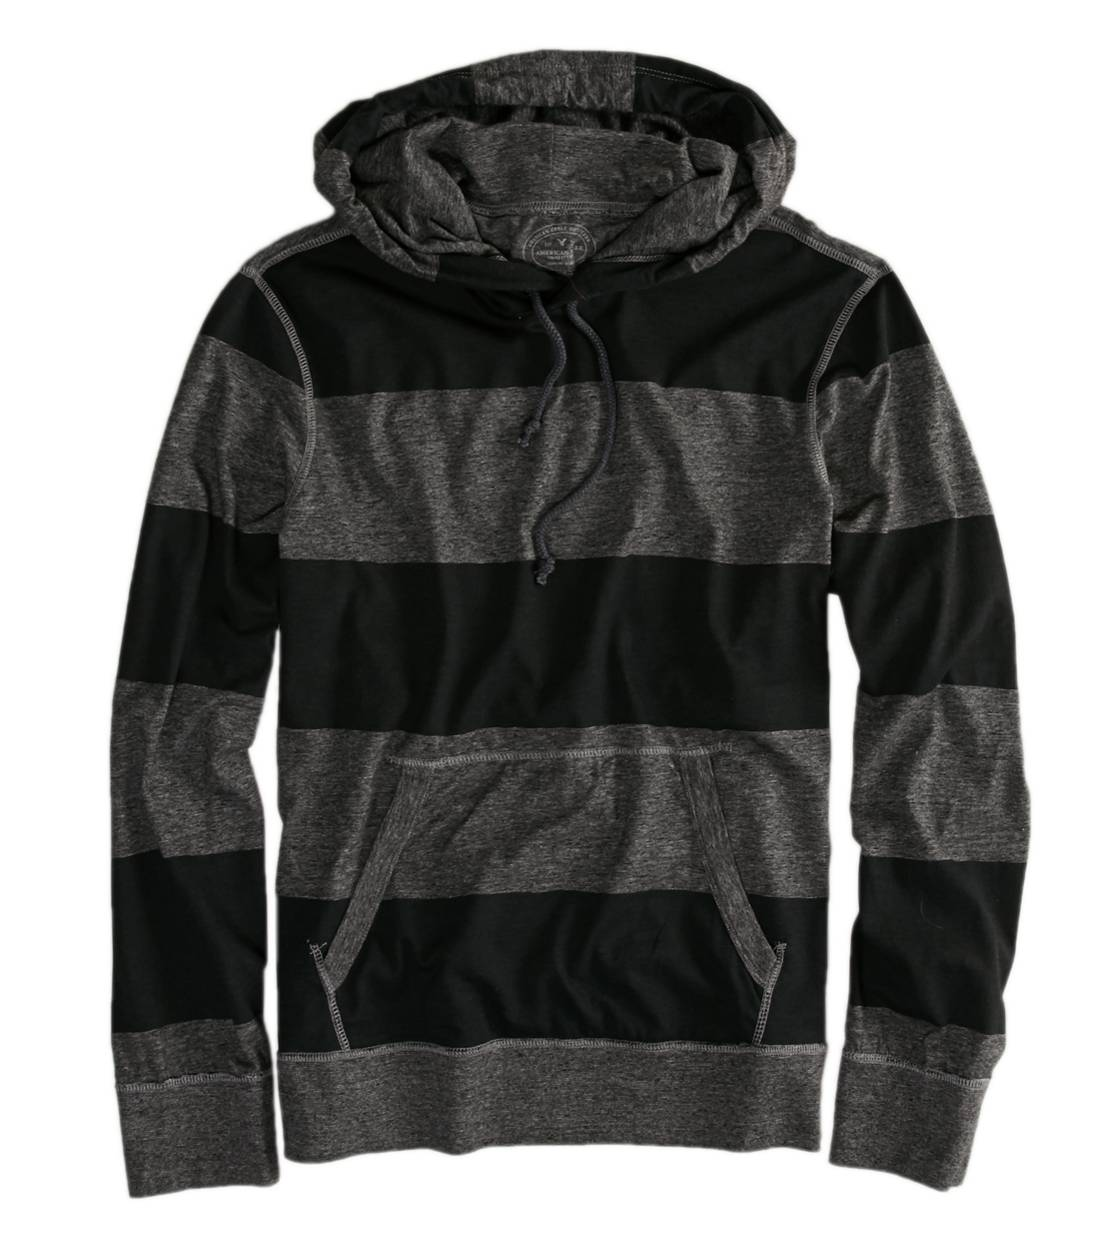 Gravel AE Striped Hoodie T-Shirt